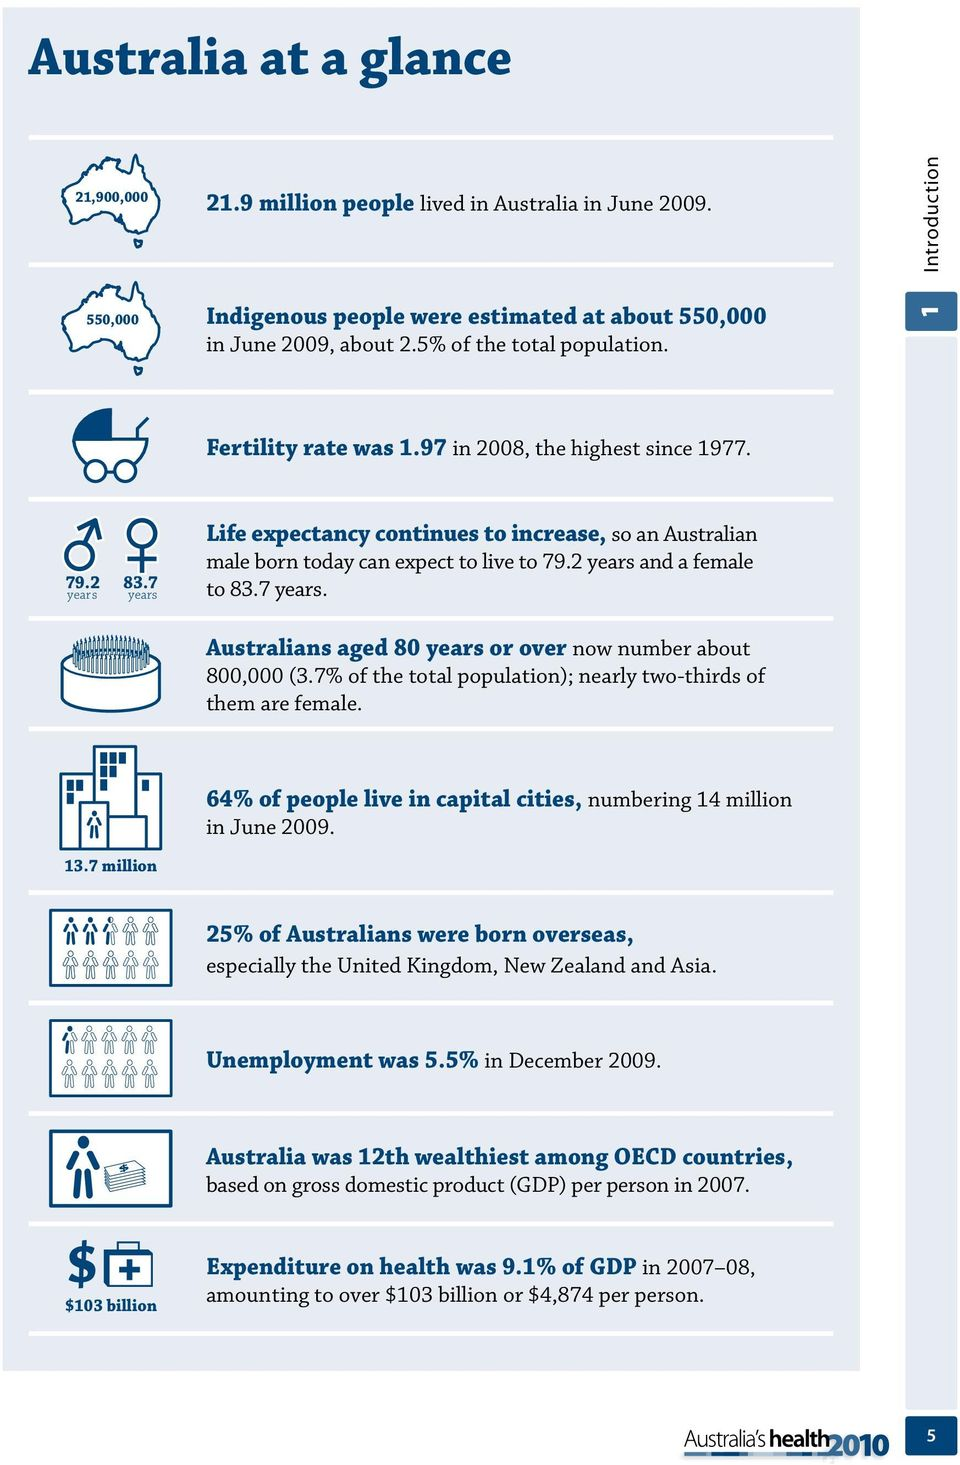 7 years. Australians aged 80 years or over now number about 800,000 (3.7% of the total population); nearly two-thirds of them are female.